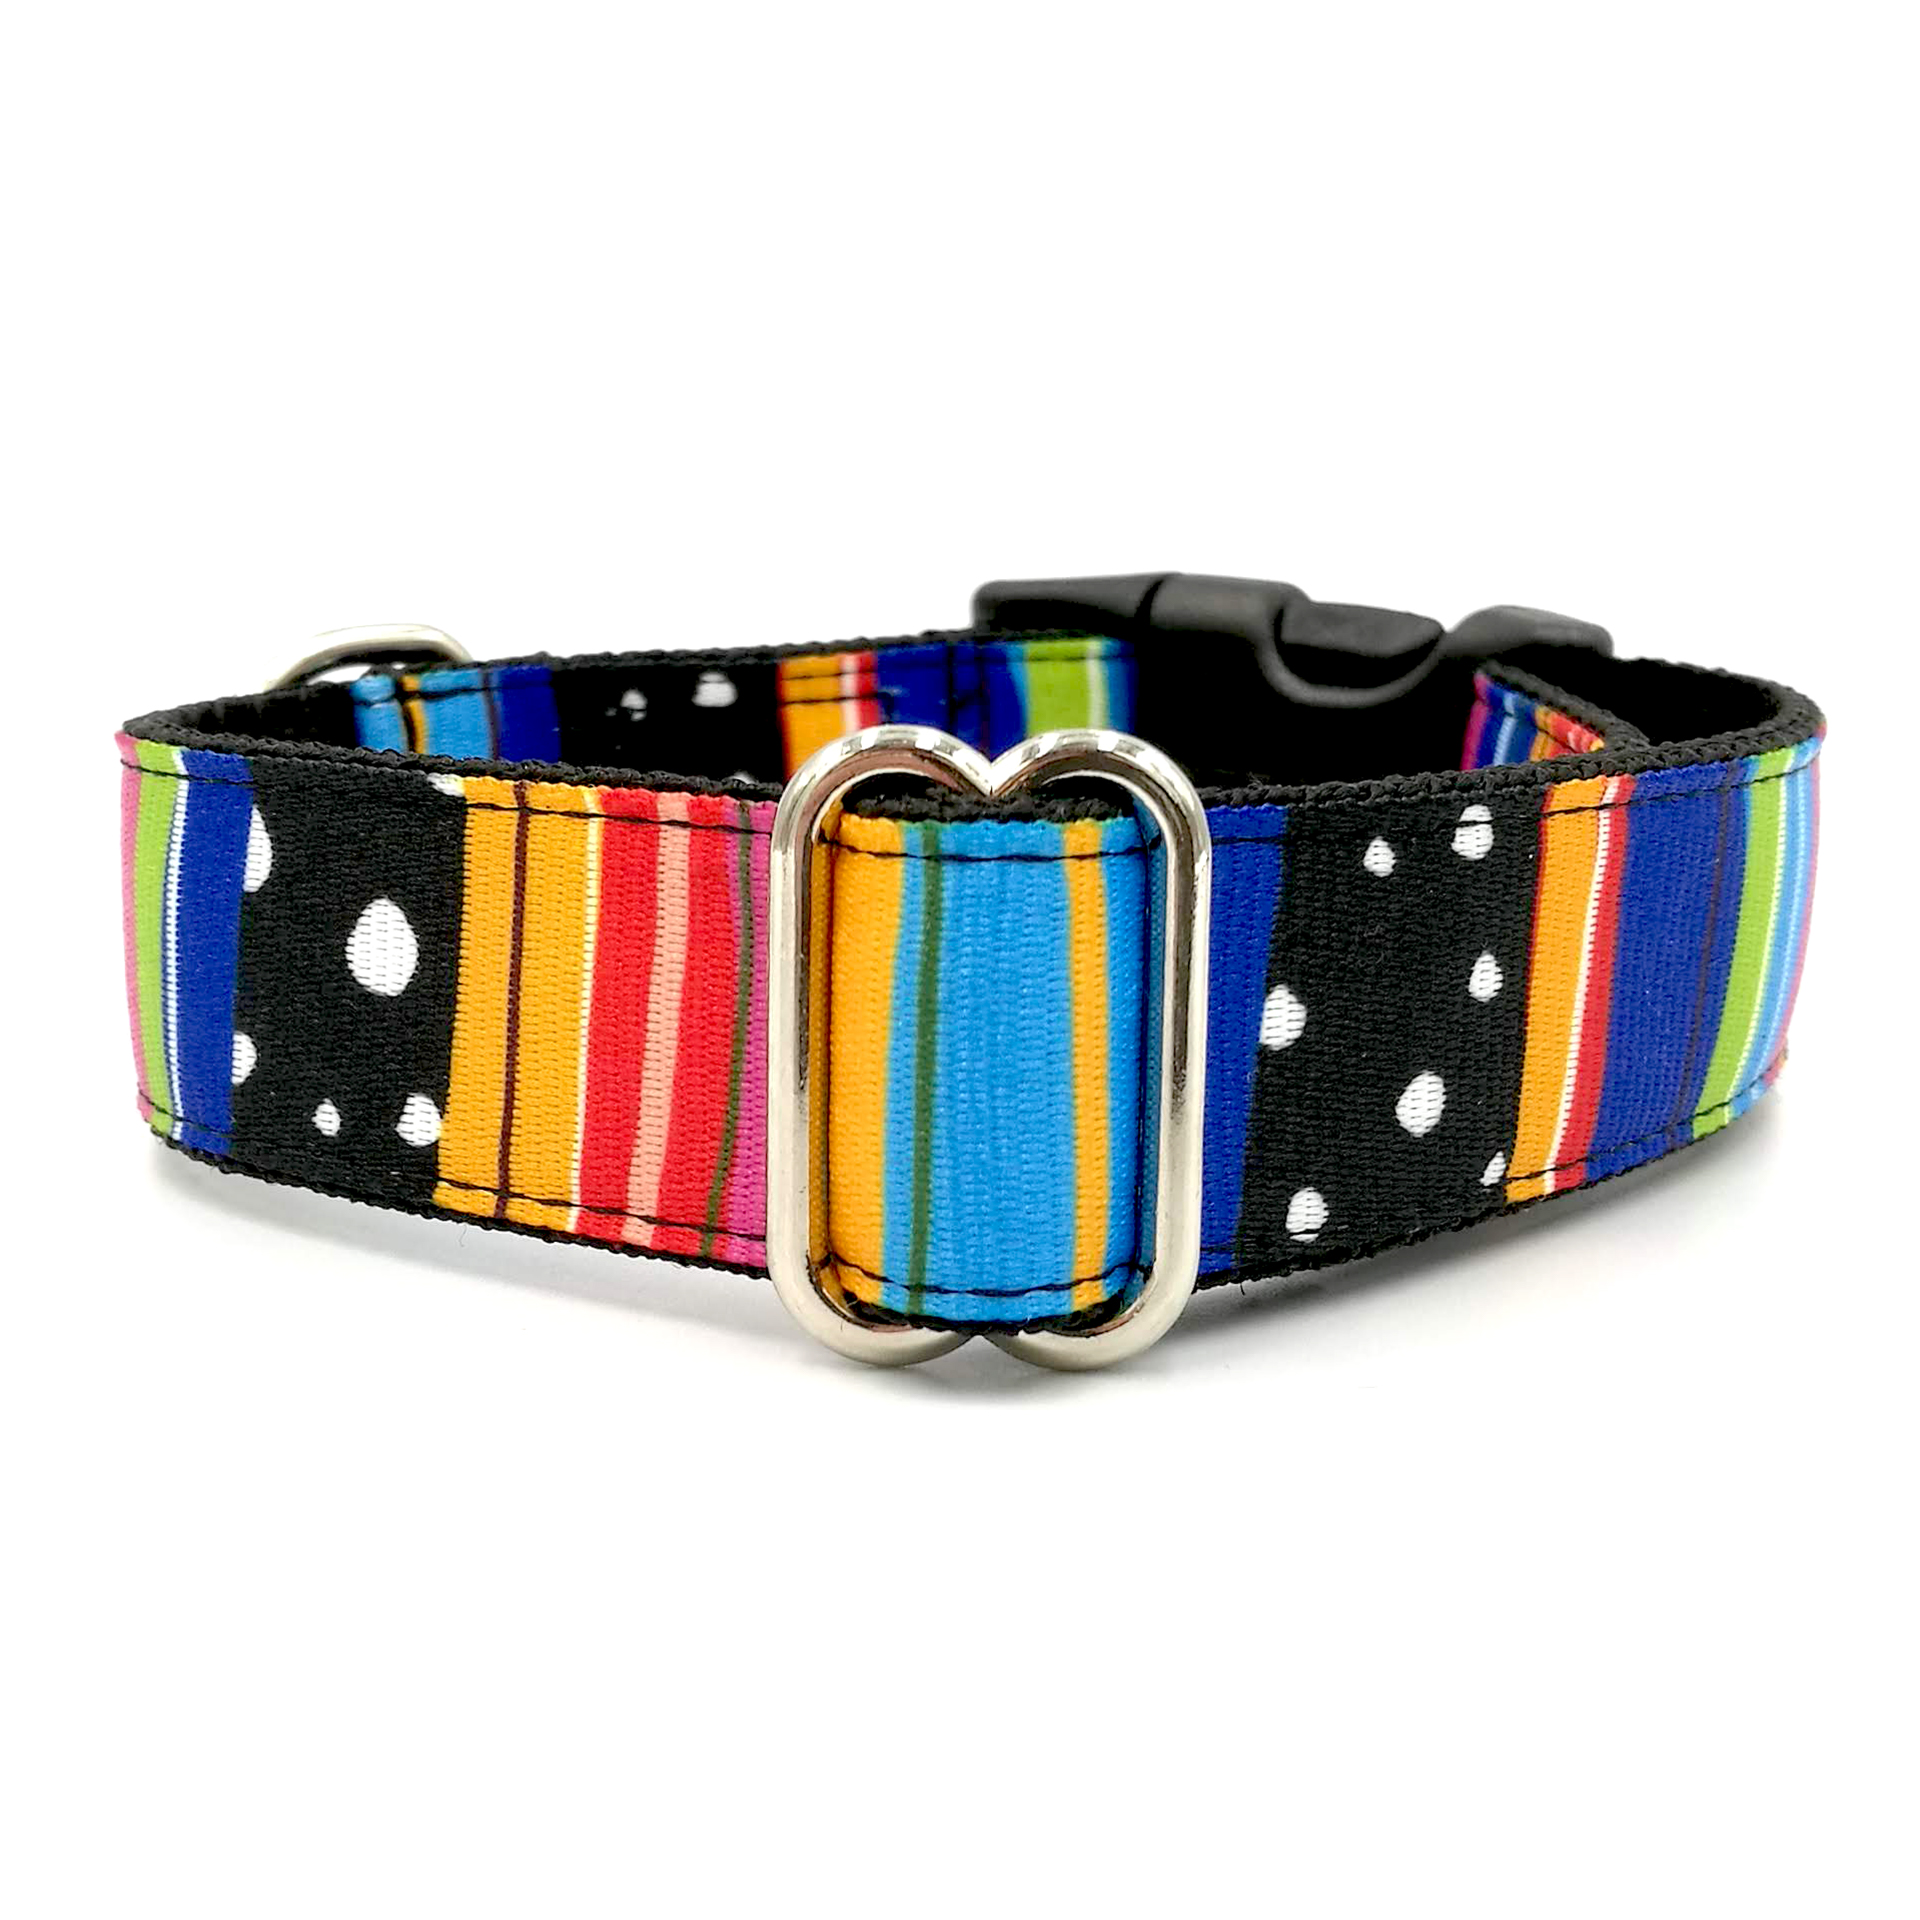 Full power dog collar